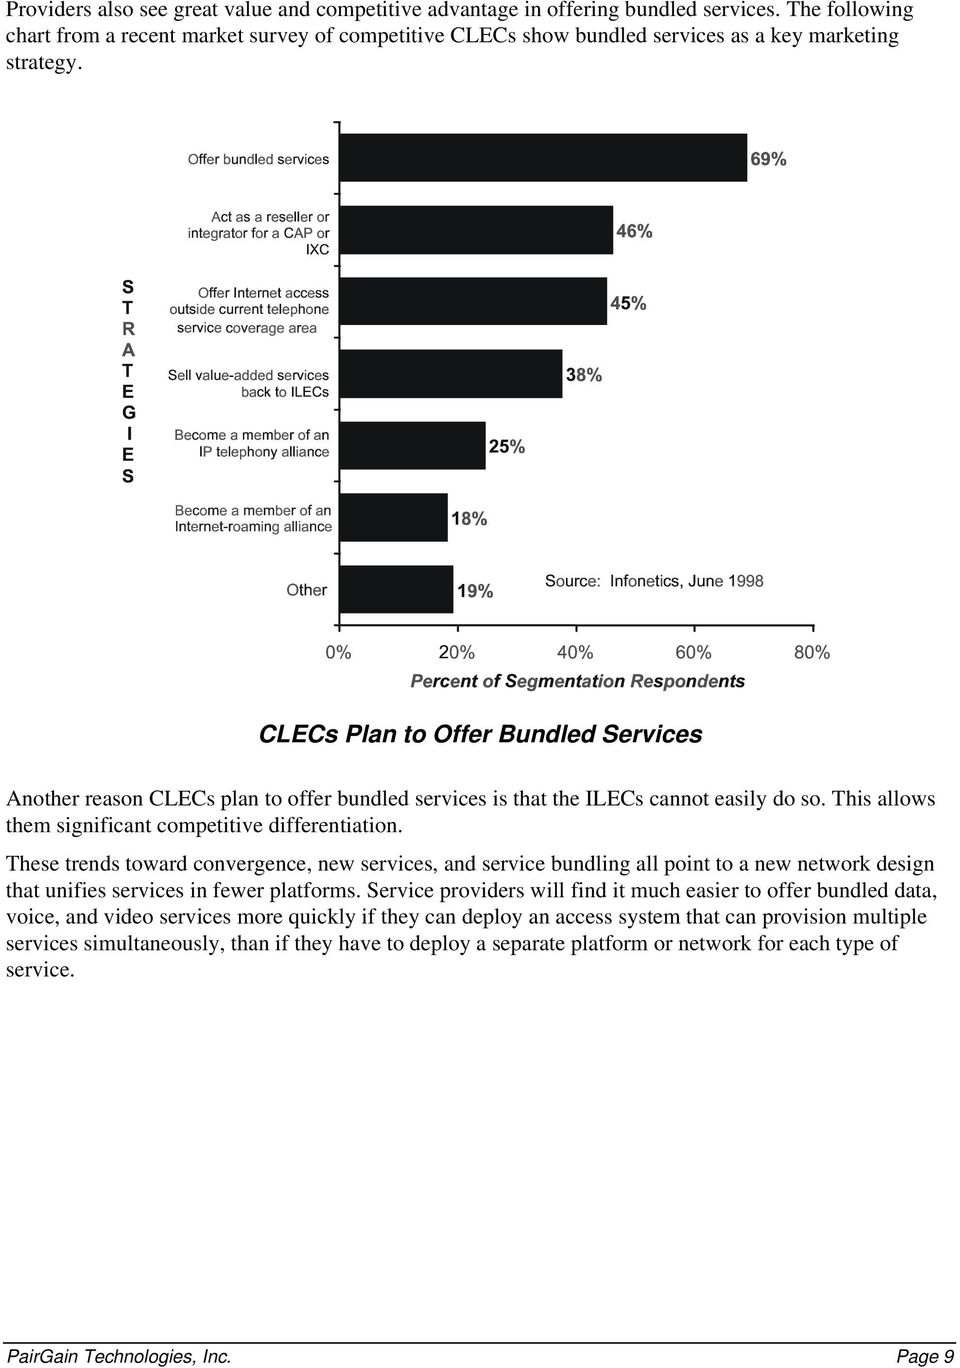 CLECs Plan to Offer Bundled Services Another reason CLECs plan to offer bundled services is that the ILECs cannot easily do so. This allows them significant competitive differentiation.